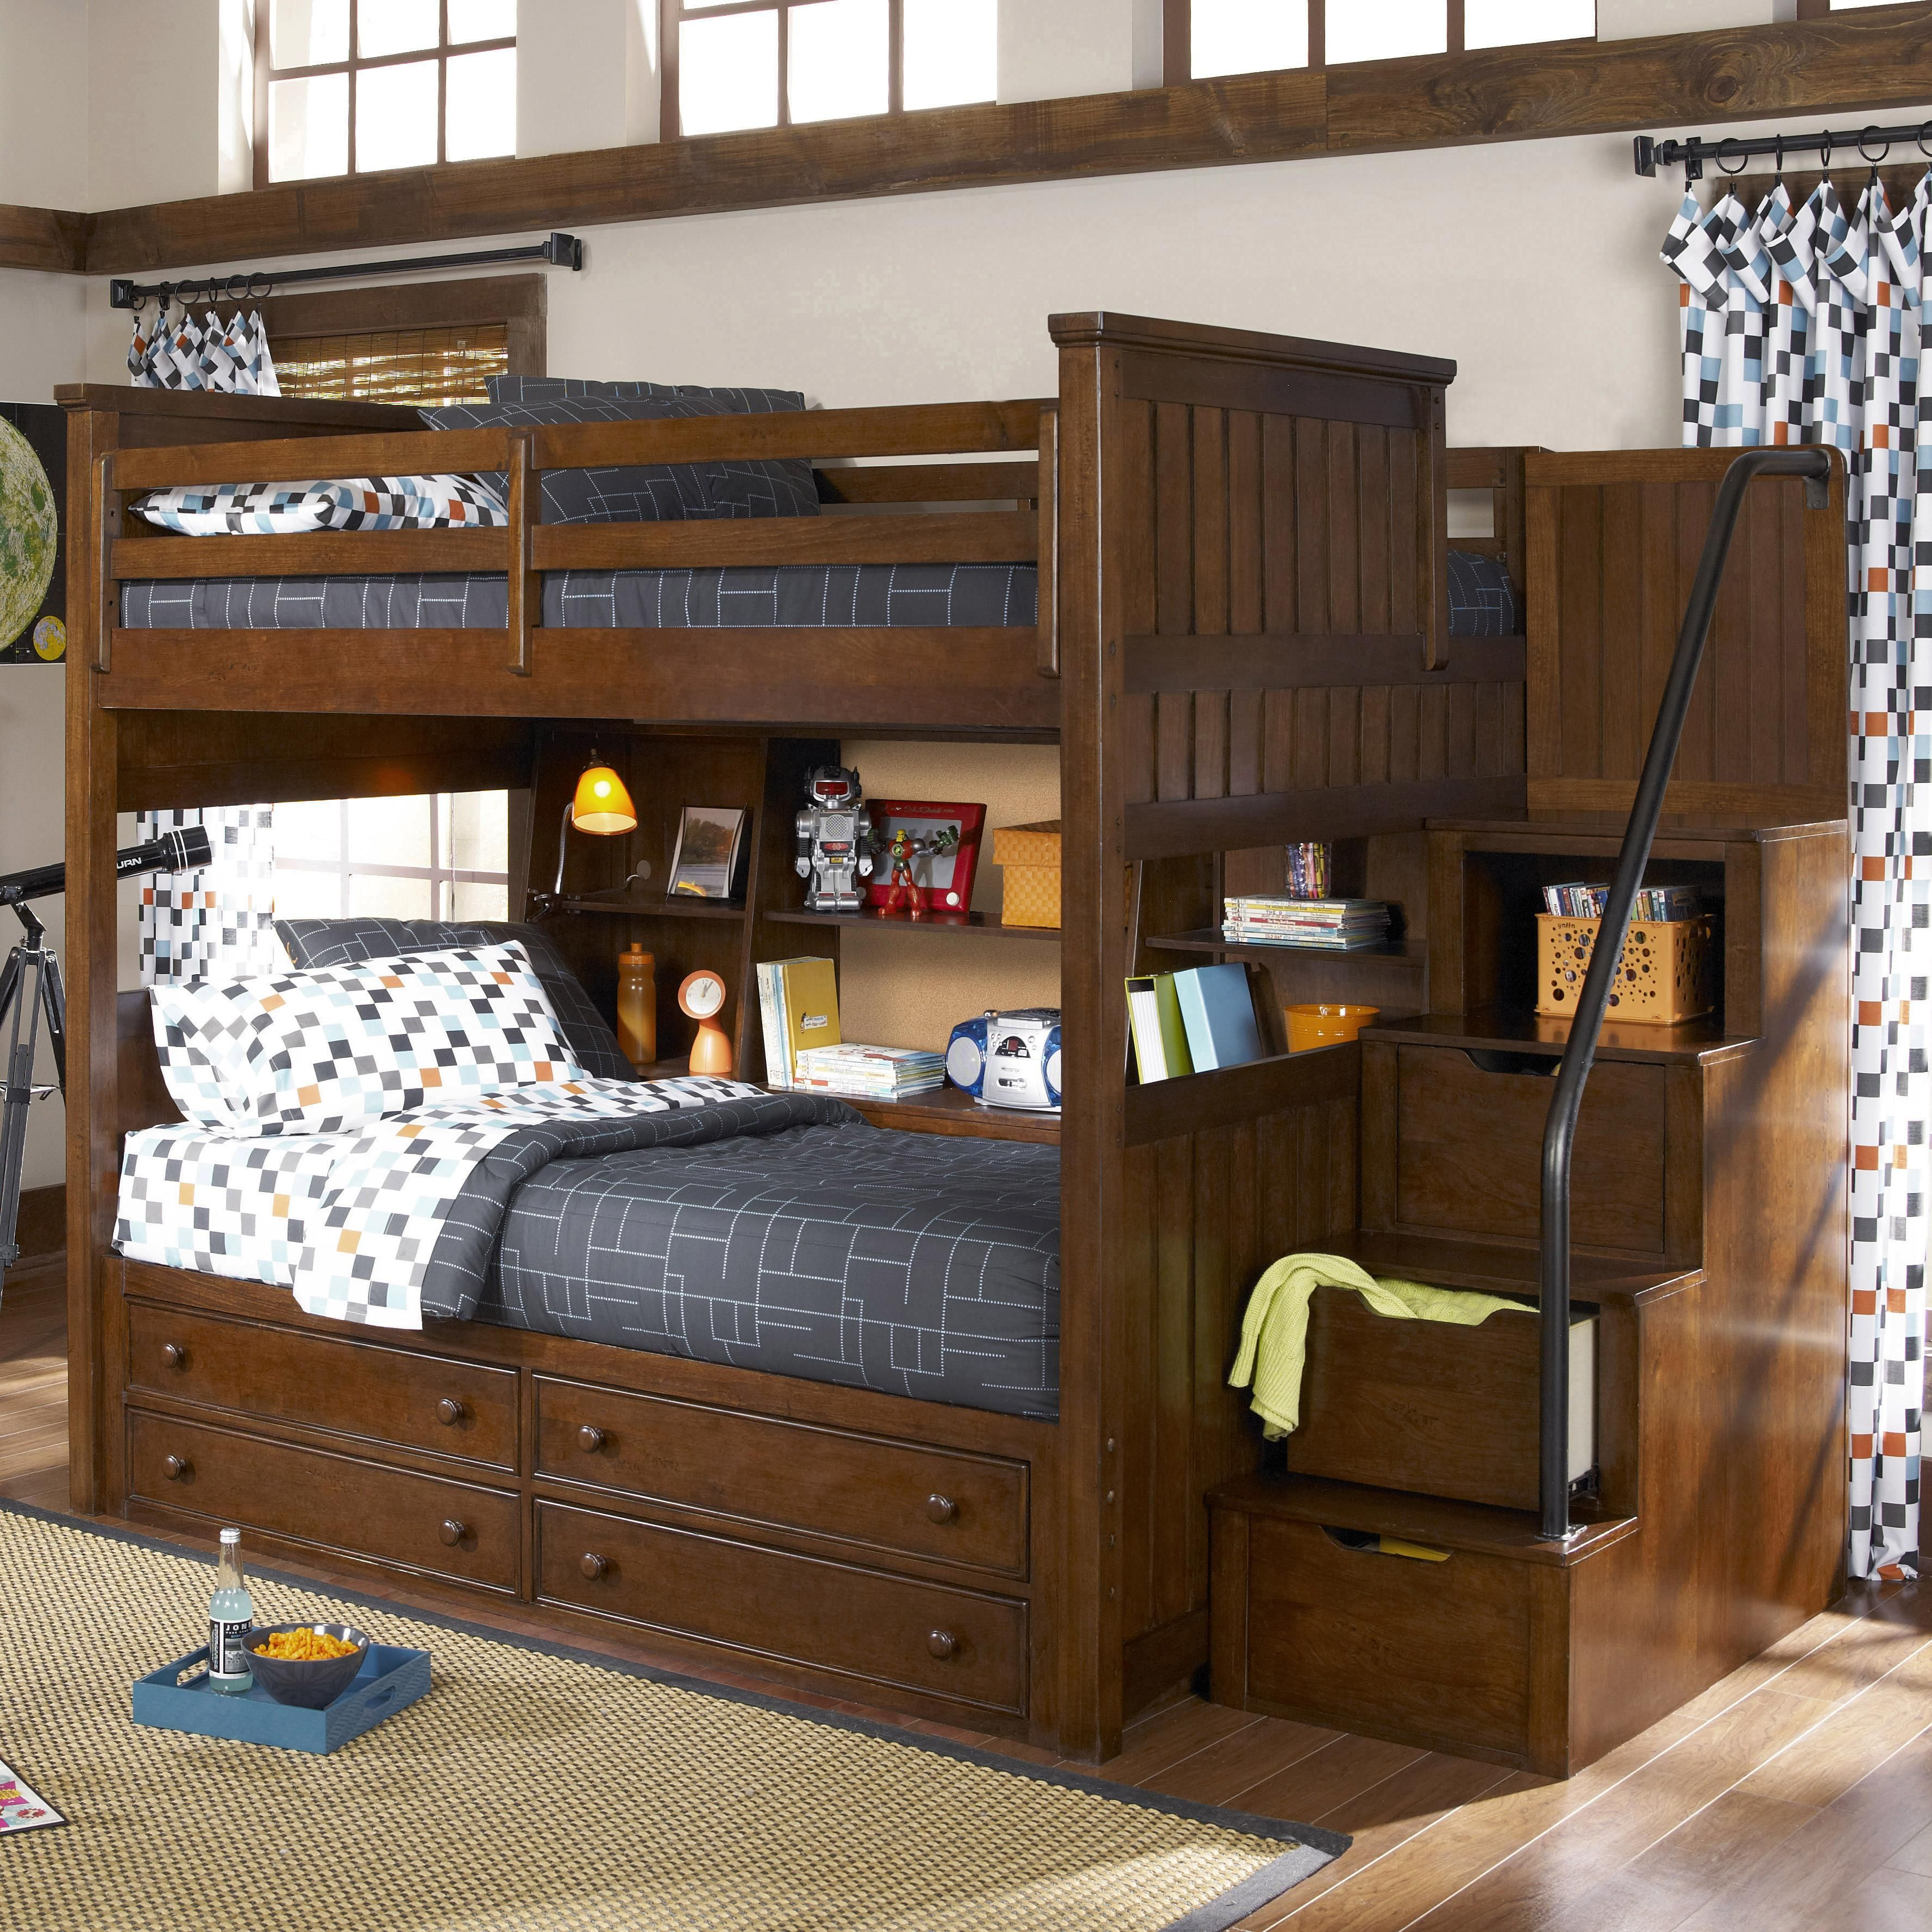 Dawson S Ridge Full Over Twin Bookcase Bunk With Stairs By Legacy Classic Kids Bunk Beds Stairway Bunk Beds Loft Bed Bunk bed full over full with stairs